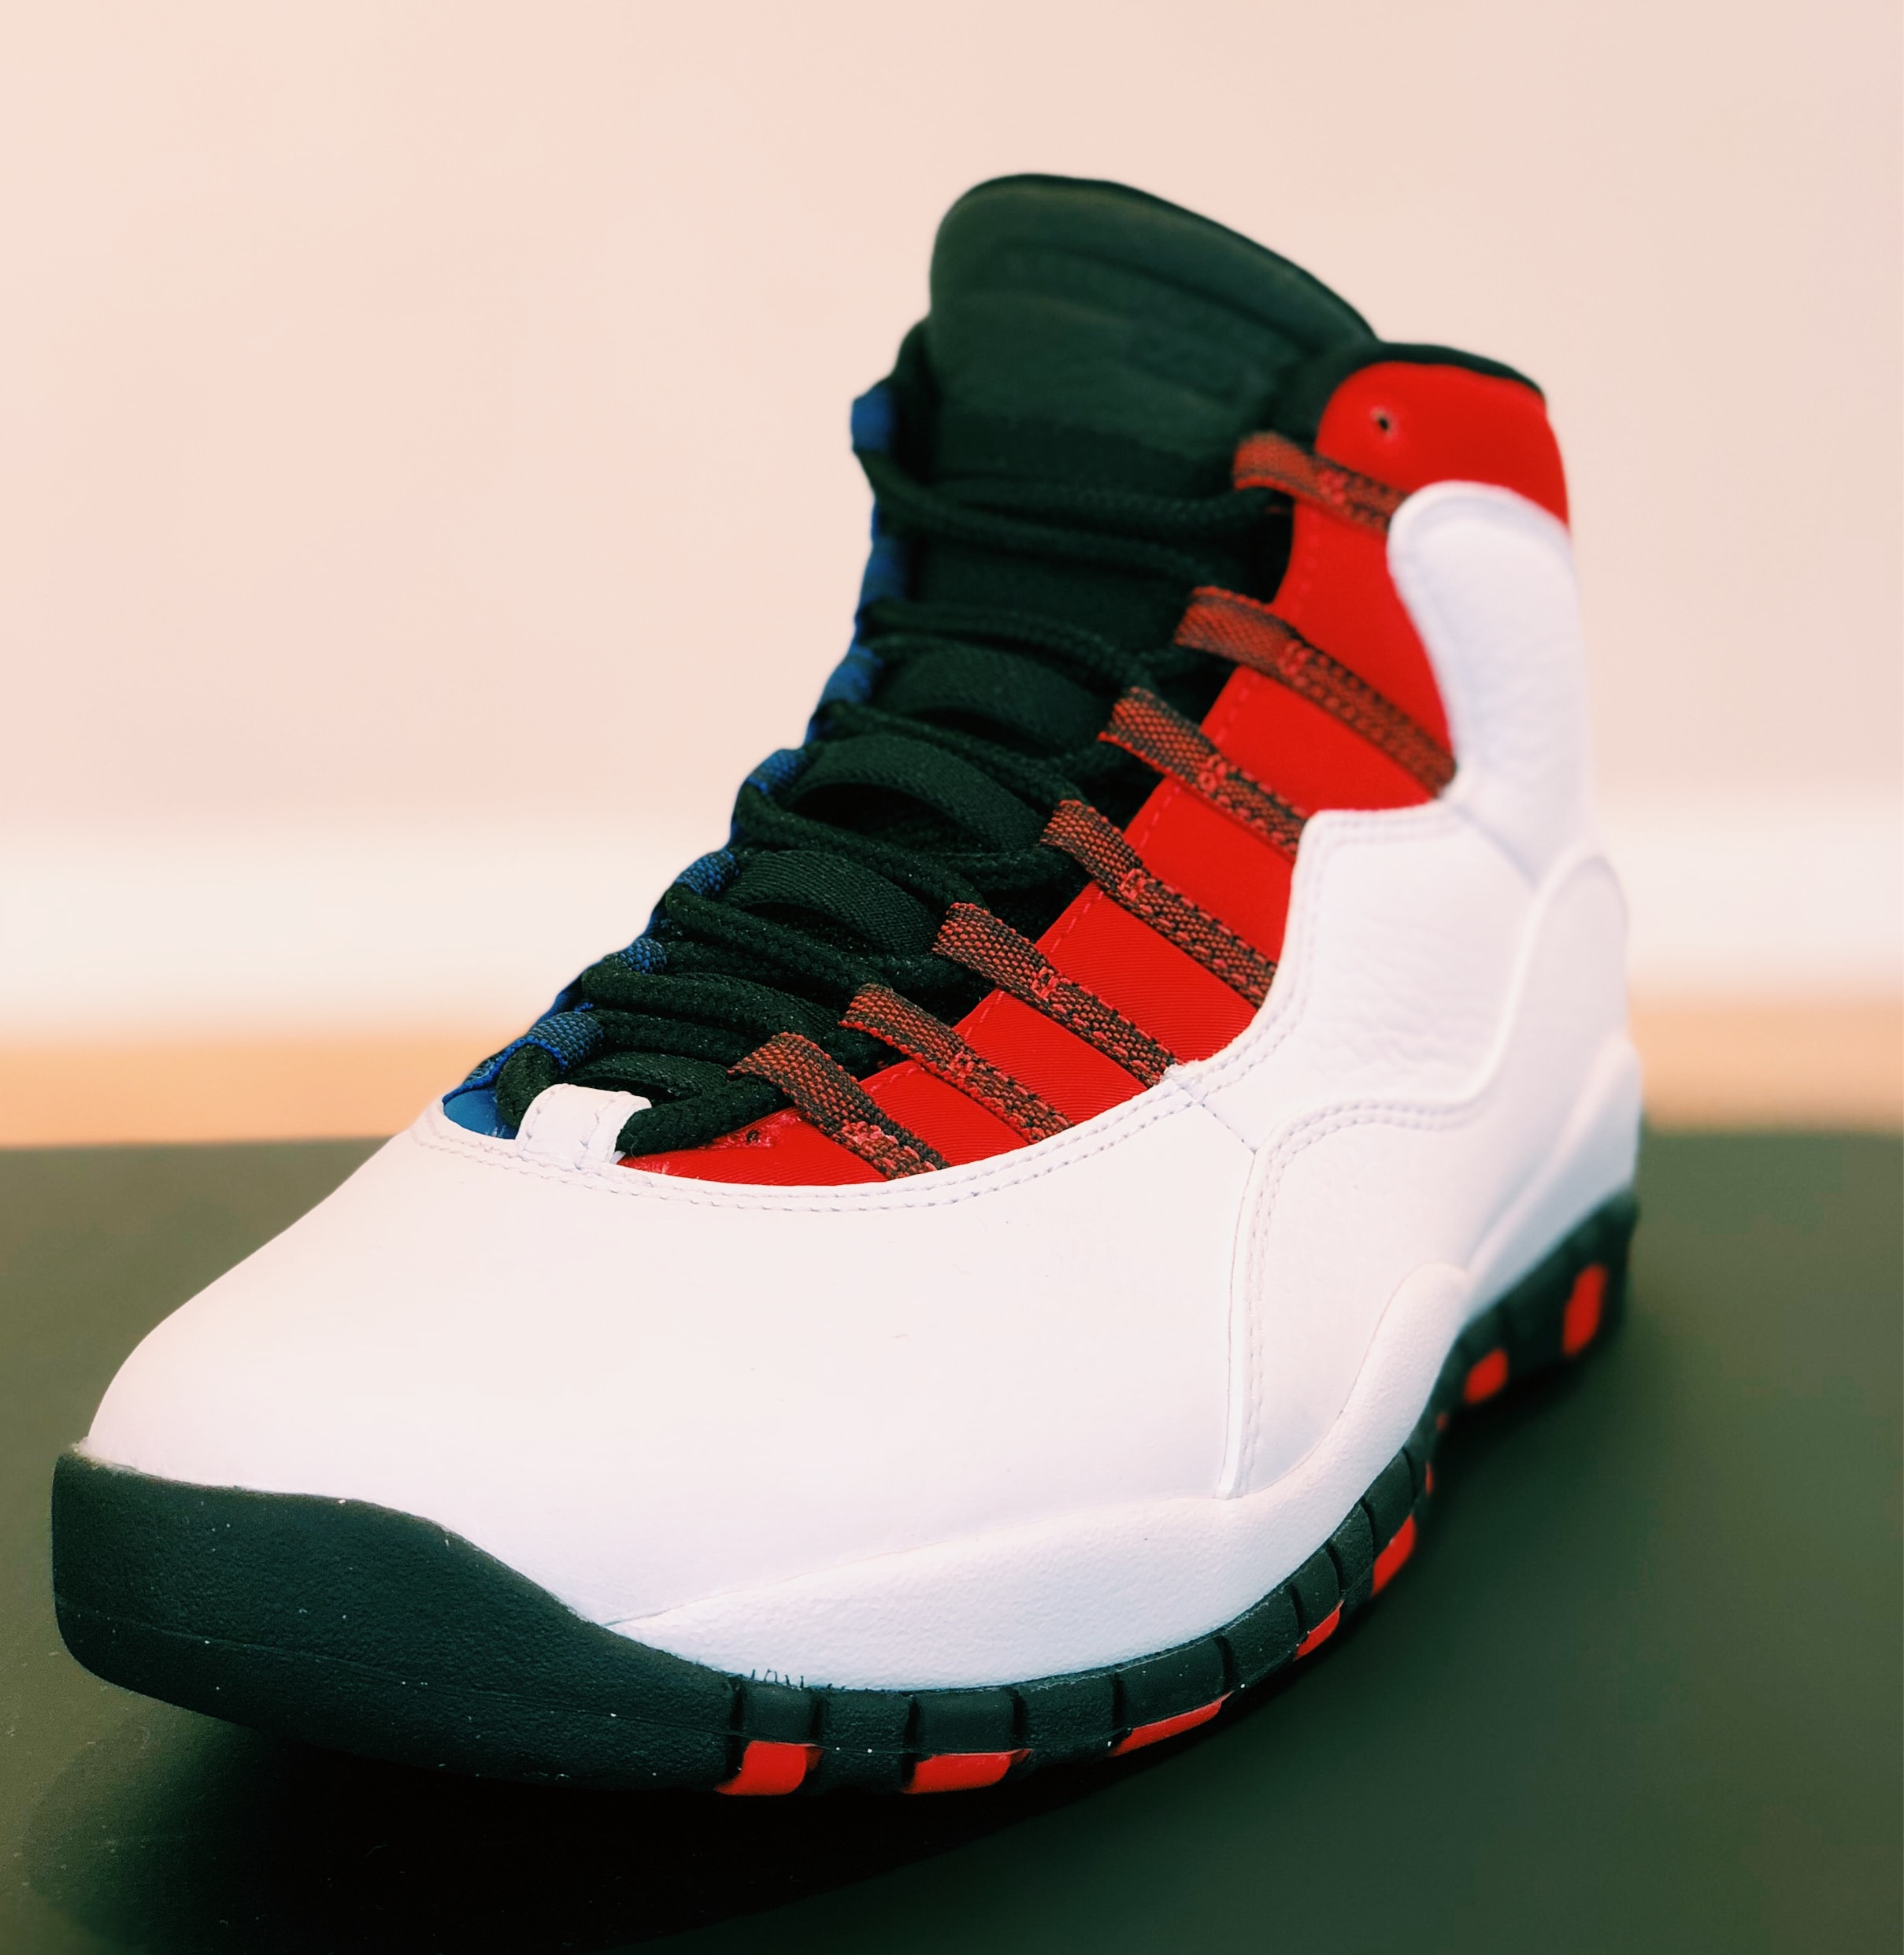 Air Jordan 10 X Russell Westbrook 'Class of 2006'